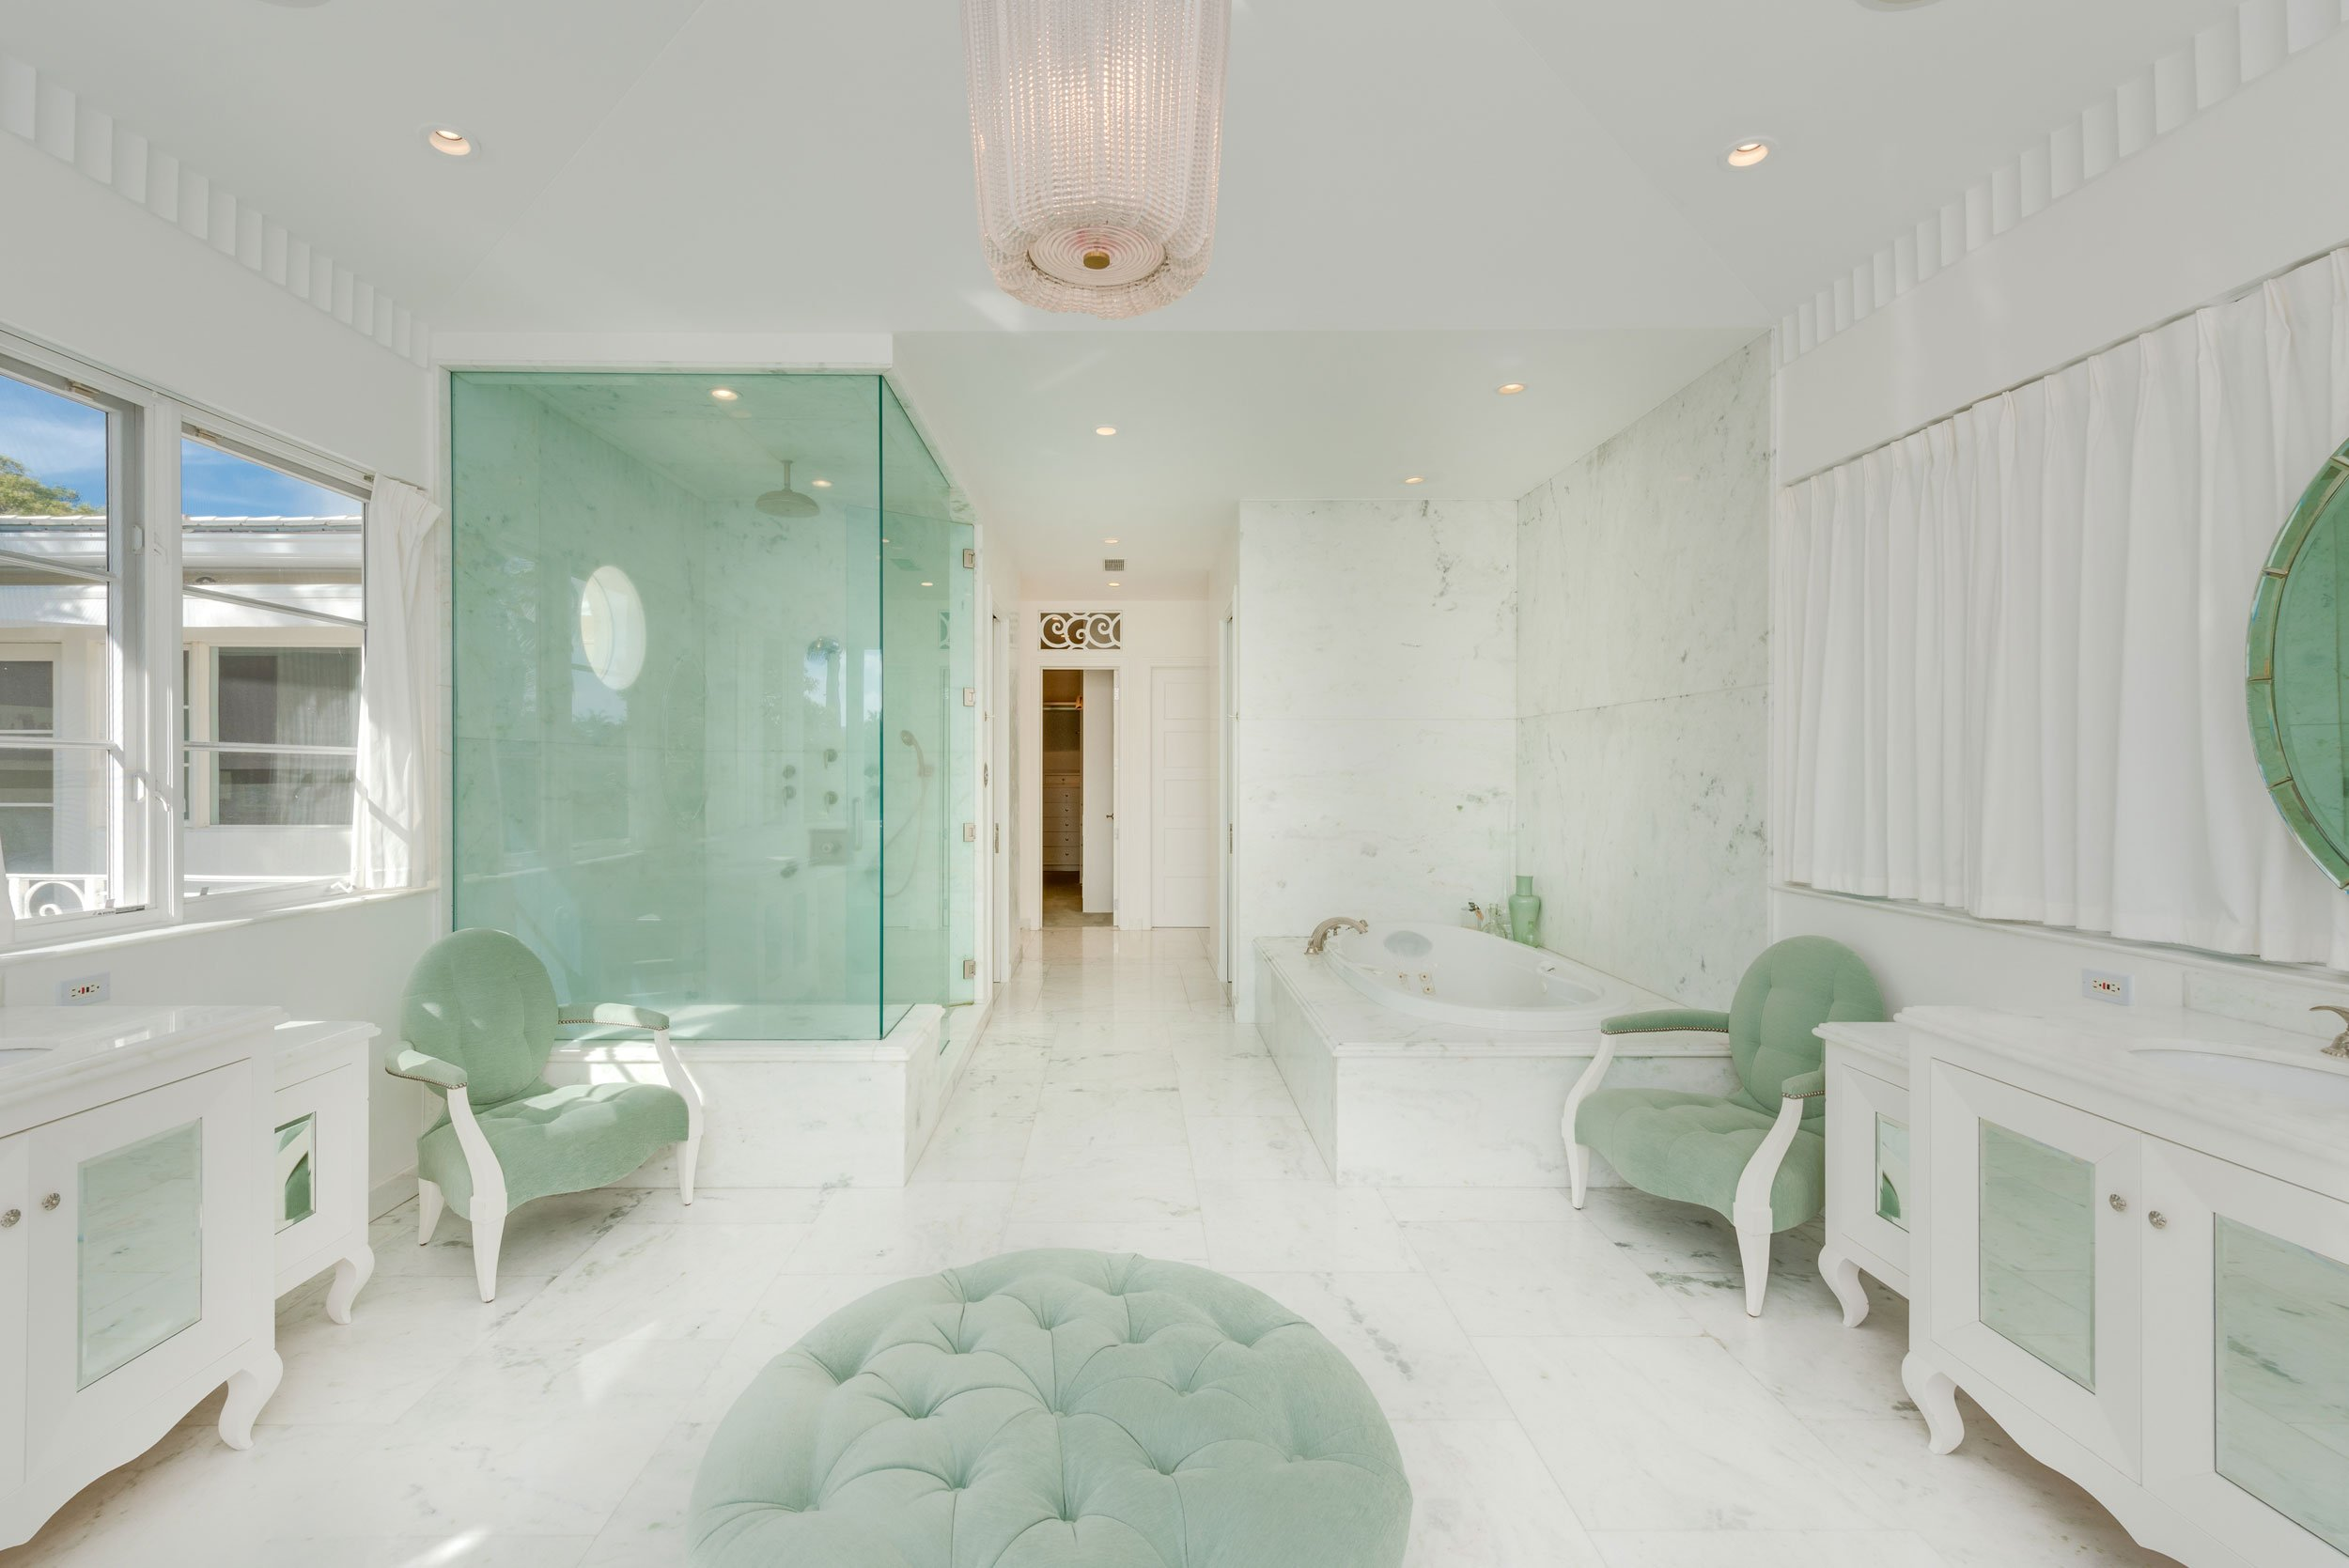 The Russell Pancoast Estate is a 1930s landmark in Miami Beach. The home's elegant master bathroom is like a jewel, accoutered in white marble with sea-green-hued furnishings.